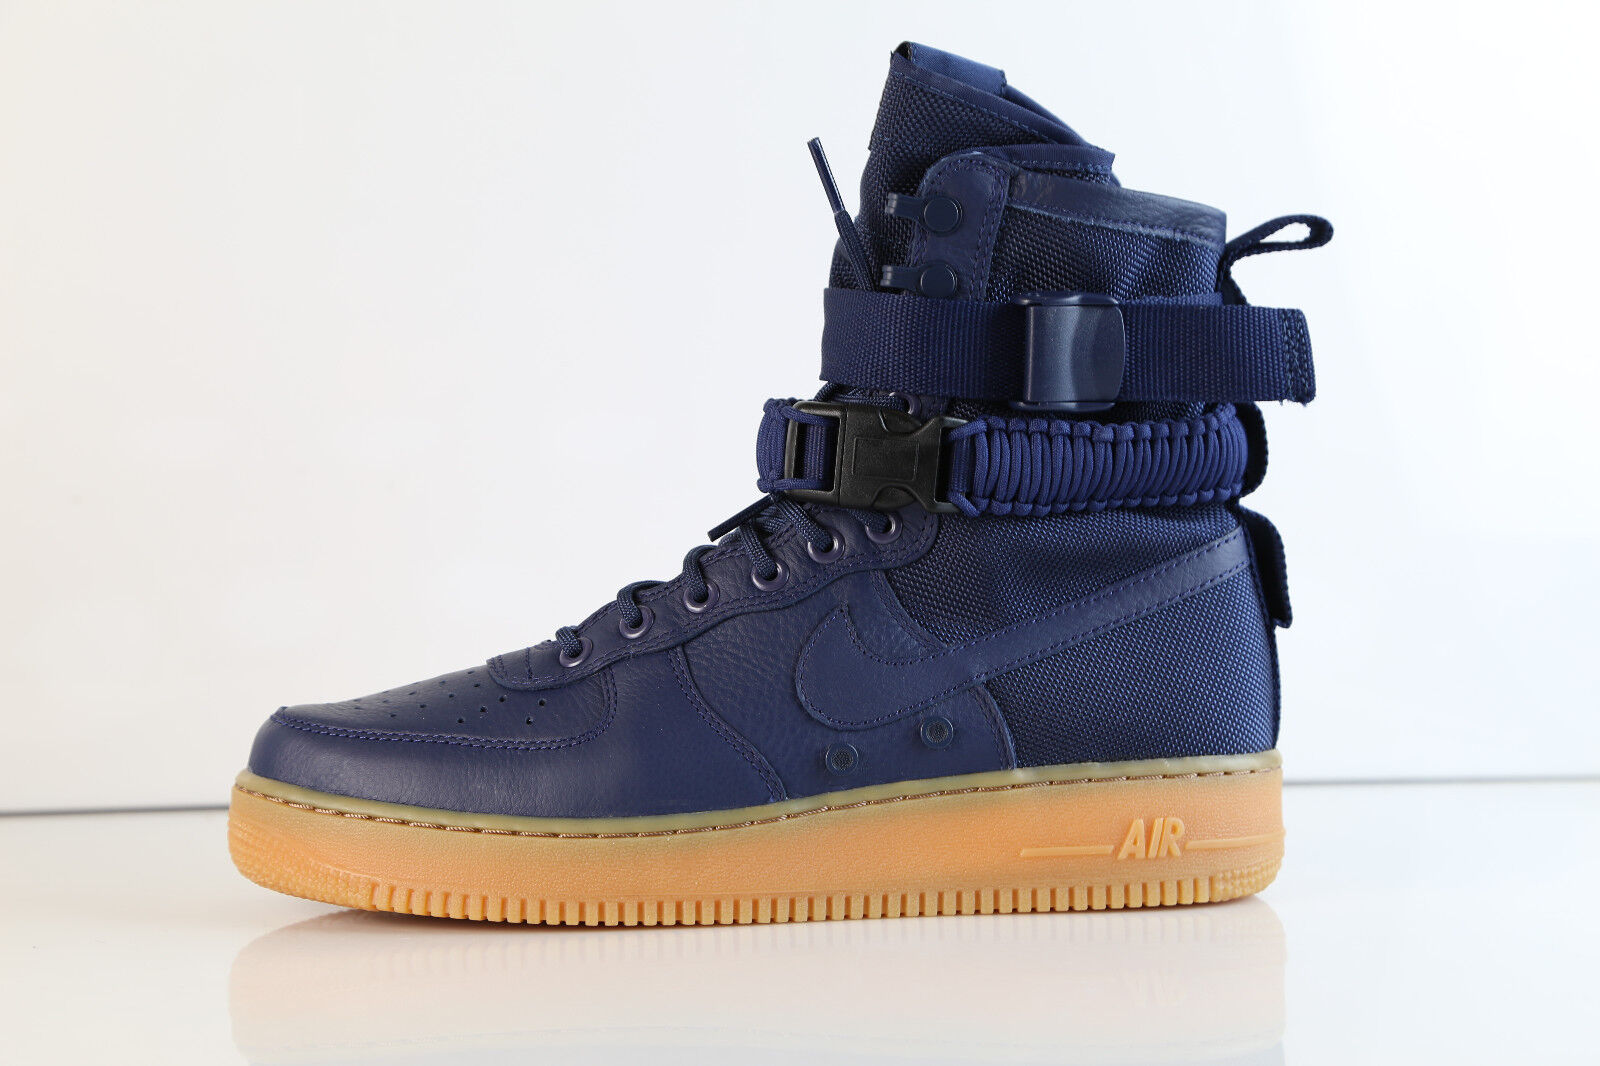 Nike SF AF1 Midnight Navy Gum 864024-400 8.5-13 special force air force 1